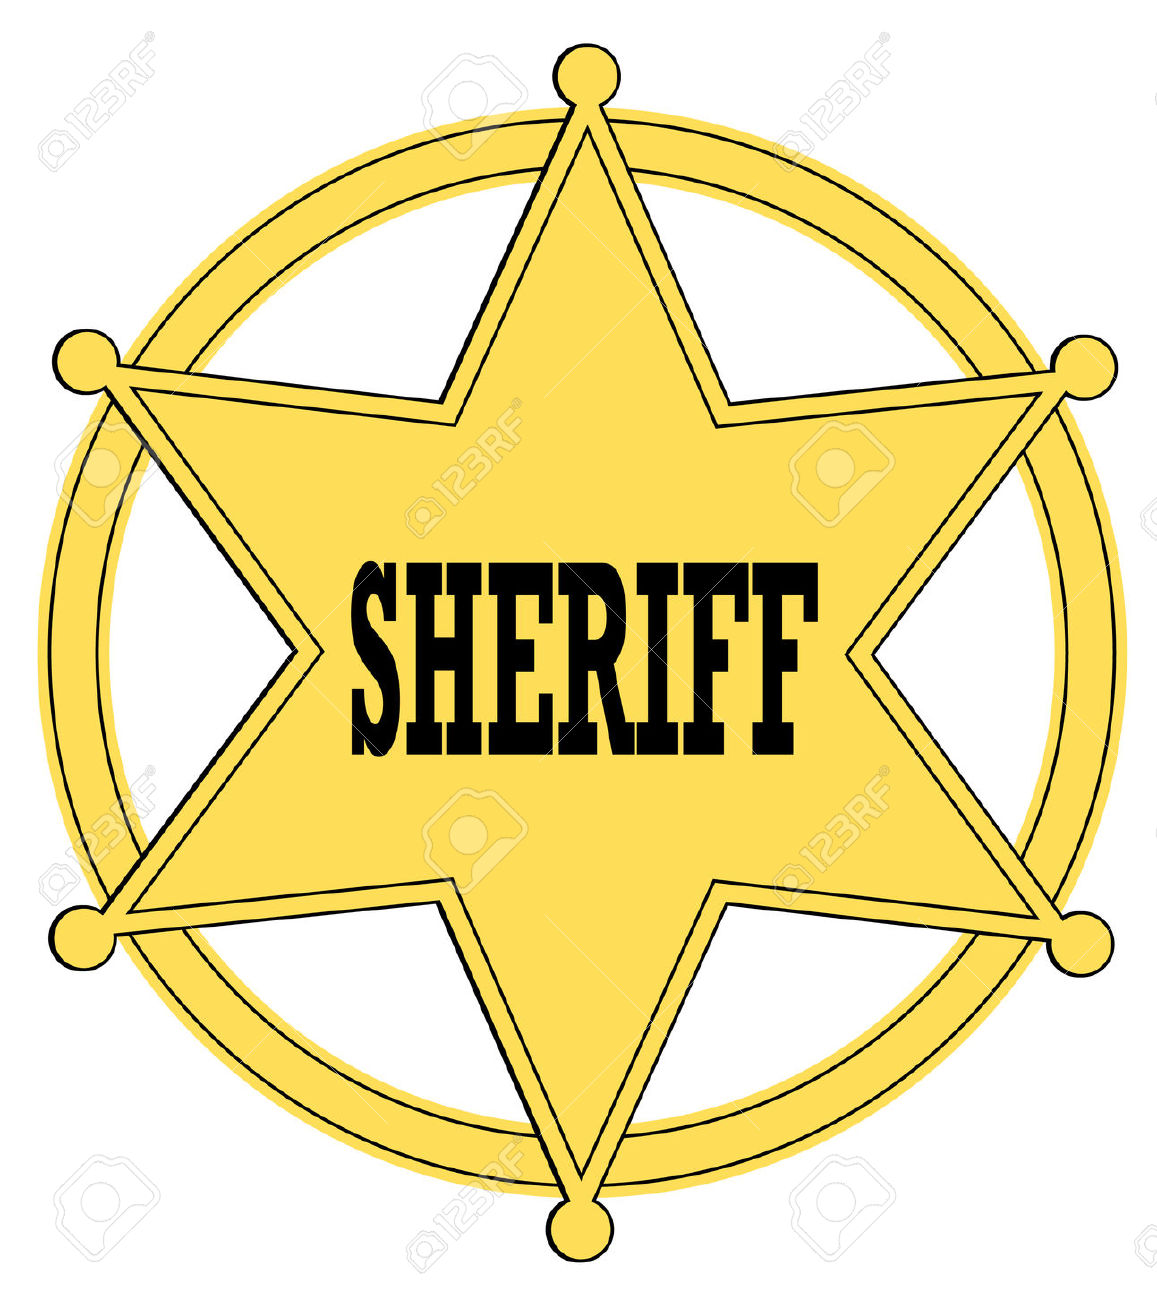 Collection of Sheriff badge clipart.